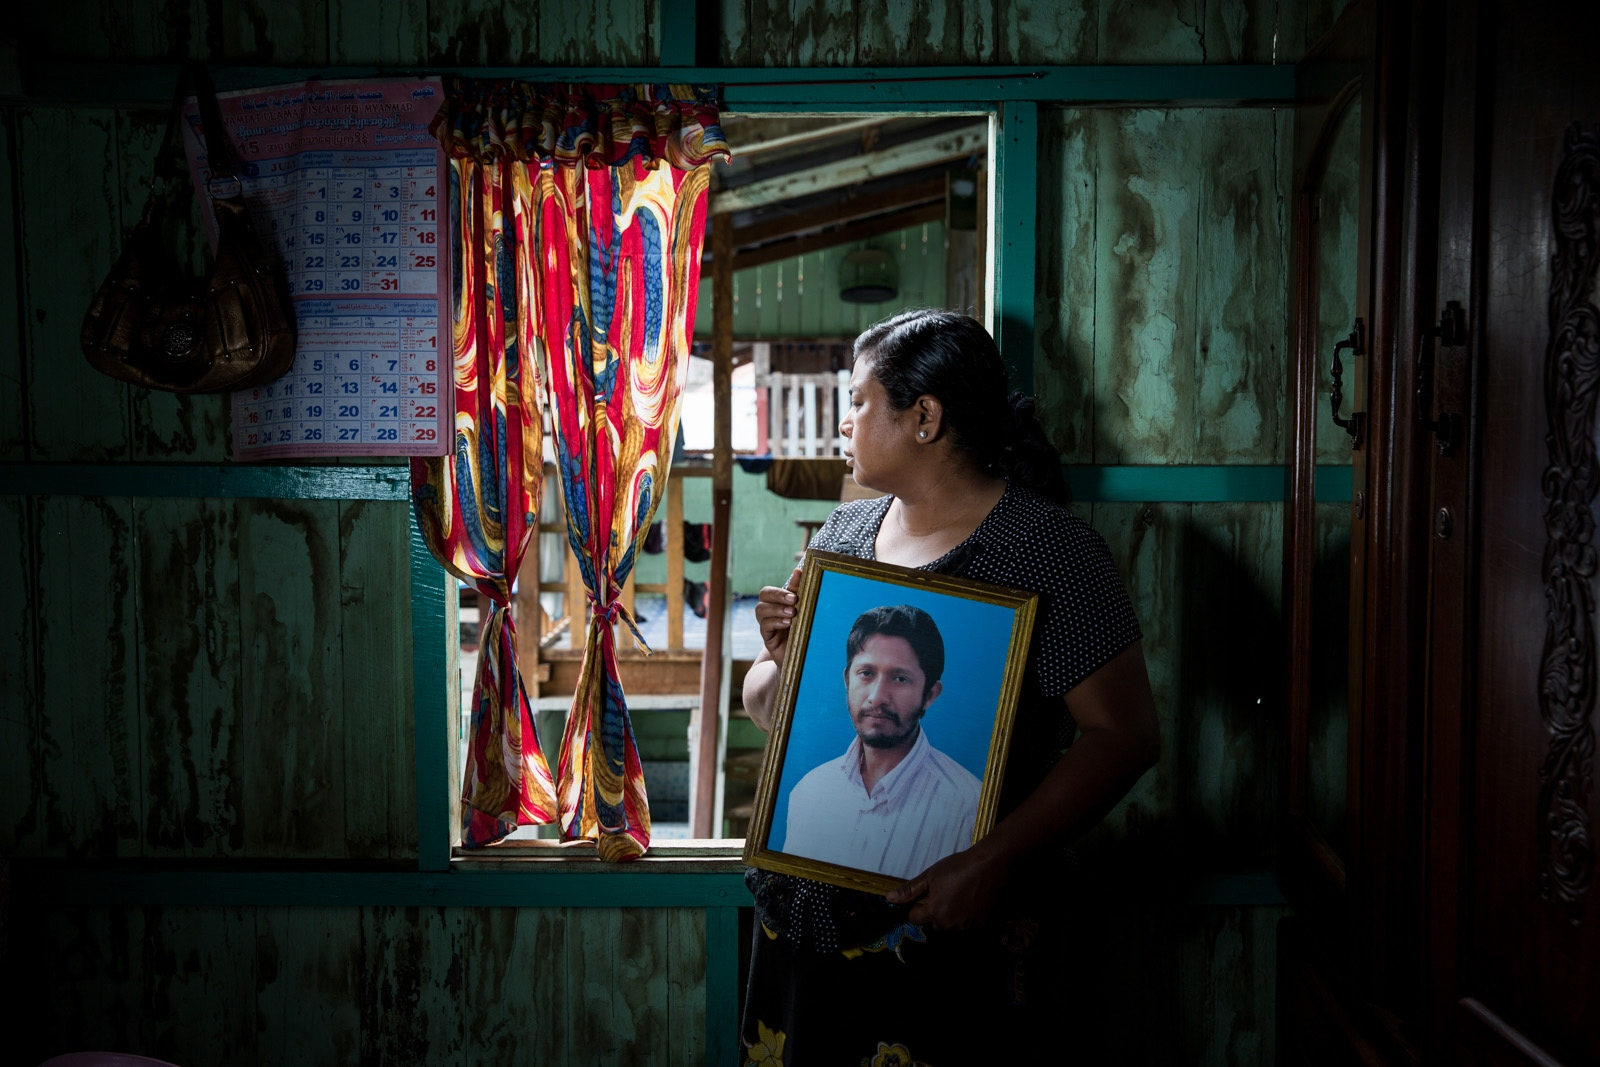 The wife of arbitrarily detained Htay Win holds his picture in their family house in Taungyi. Myanmar military intelligence arrested Htay Win, 44, at his home in Taunggyi in Shan State. He was beaten and arrested in front of his family. The Taunggyi District Court sentenced him in a trial that failed to meet fair trial standards to 14 years imprisonment with hard labor under the sections 5(J) and 5(L) of the 1950 Emergency Provisions Act. In October 2016, the Myanmar government repealed the notoriously controversial 1950 Emergency Provisions Act, yet Htay Win and others remain detained under the now defunct Act.